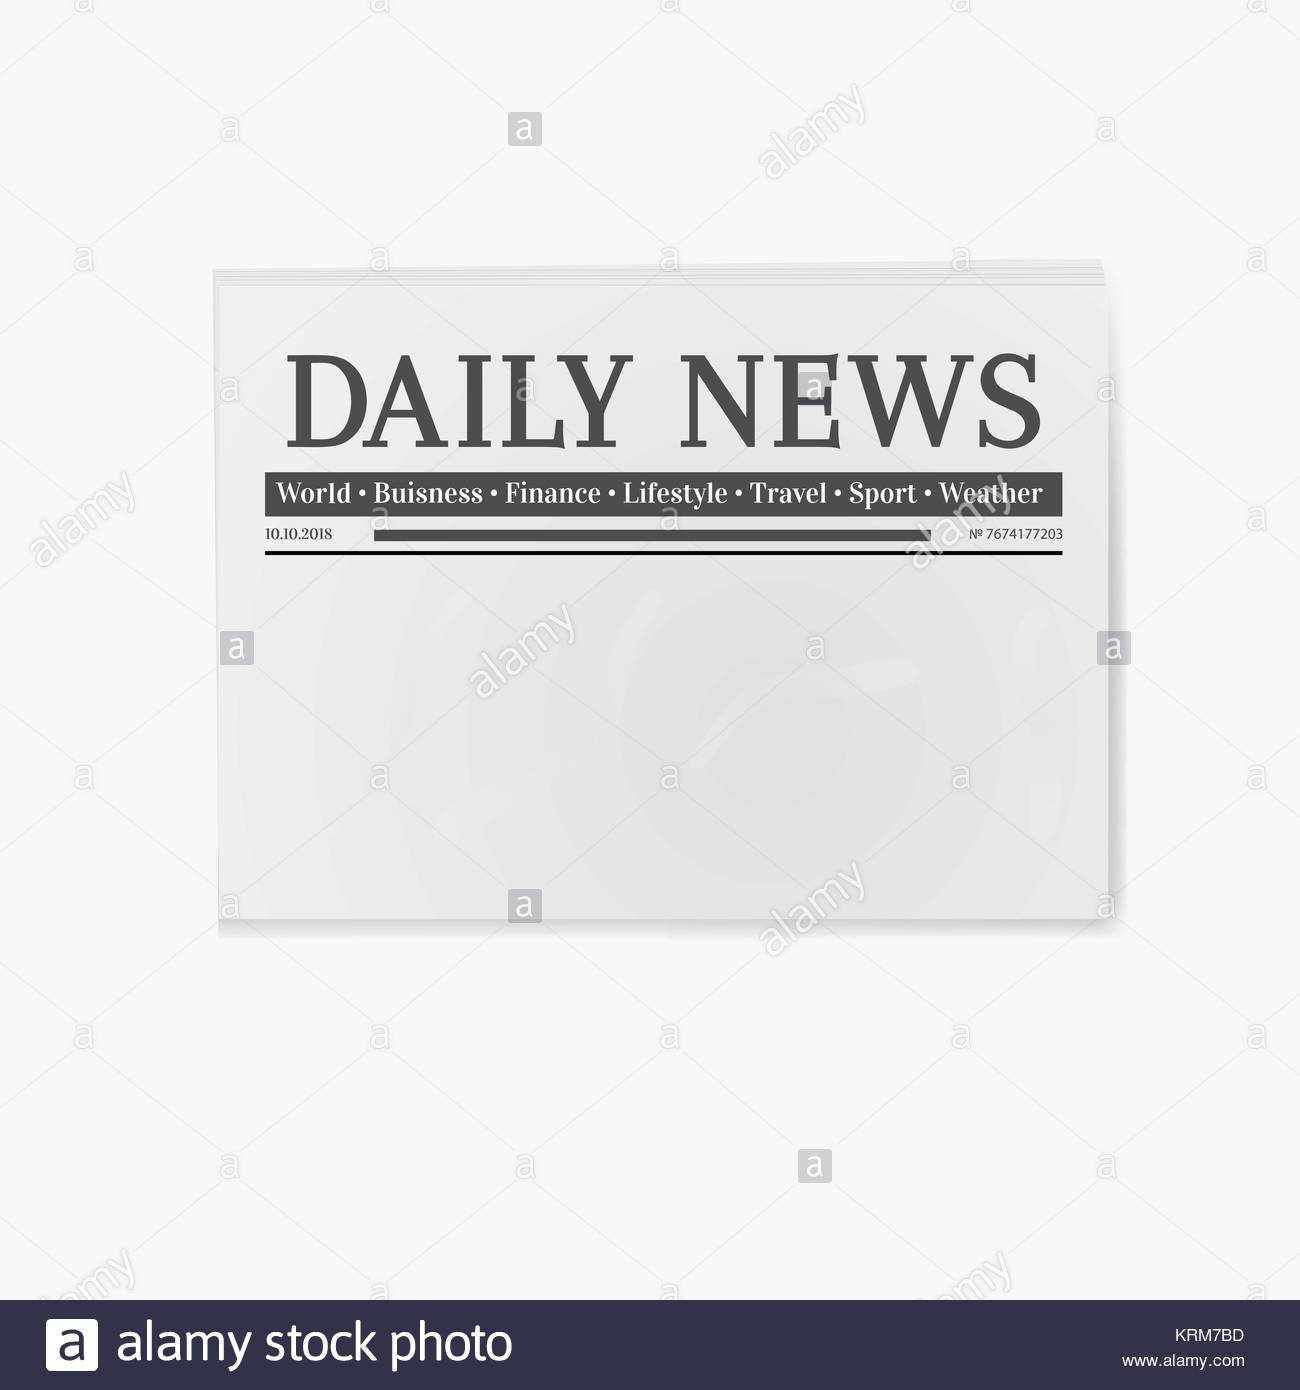 blank newspaper daily news page template illustration stock vector